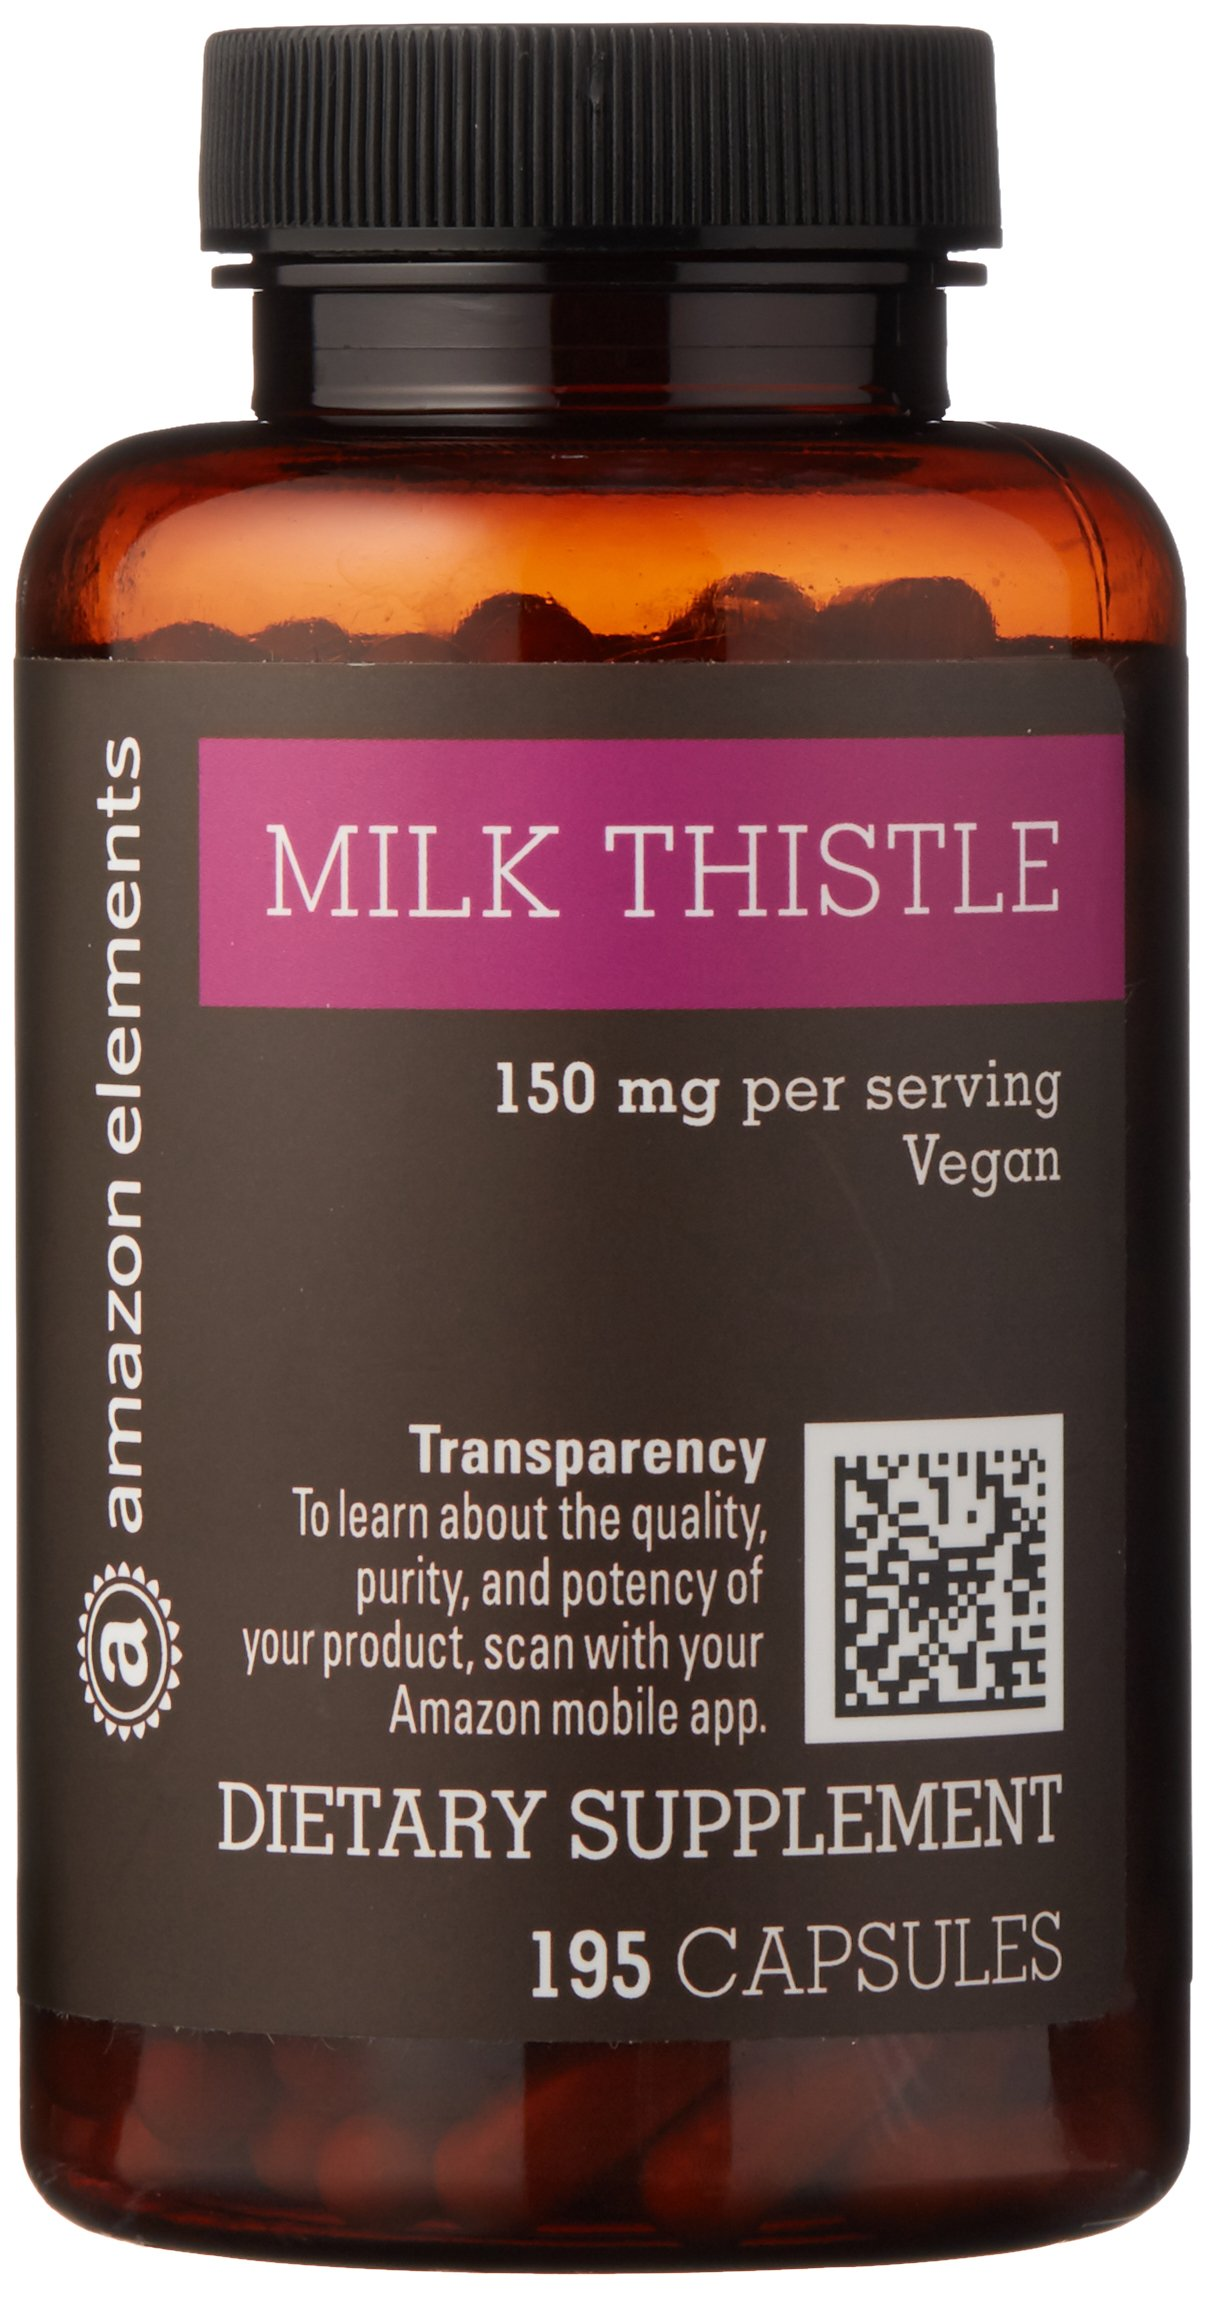 Amazon Elements Milk Thistle, Vegan, 150mg, 195 Capsules, more than a 6 month supply